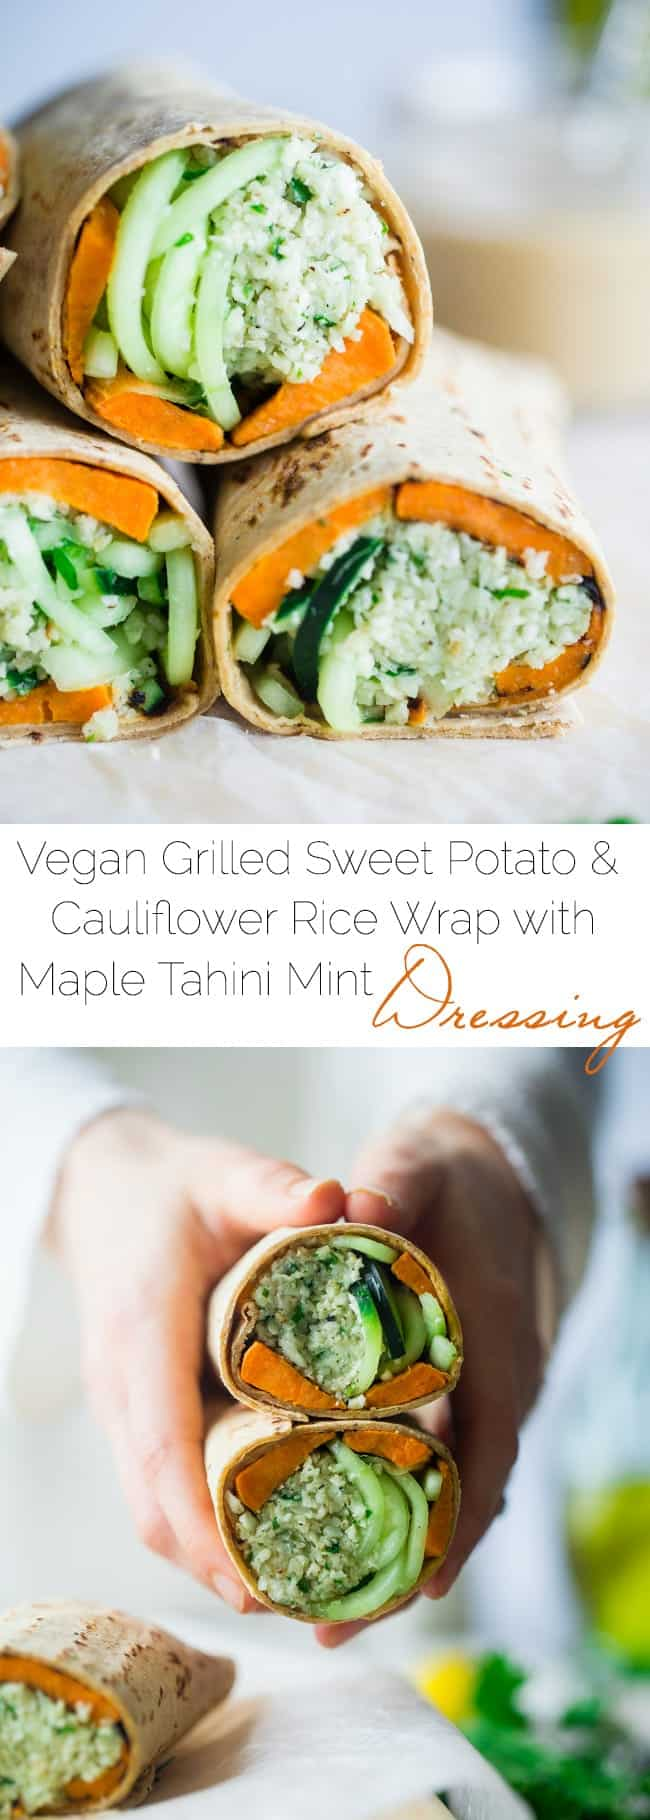 Vegan Grilled Sweet Potato and Mint Tahini Cauliflower Rice Wraps - Grilled sweet potatoes, mint tahini cauliflower rice and spiralized cucumber noodles make this easy, healthy and portable meatless meal! | Foodfaithfitness.com | @FoodFaithFit